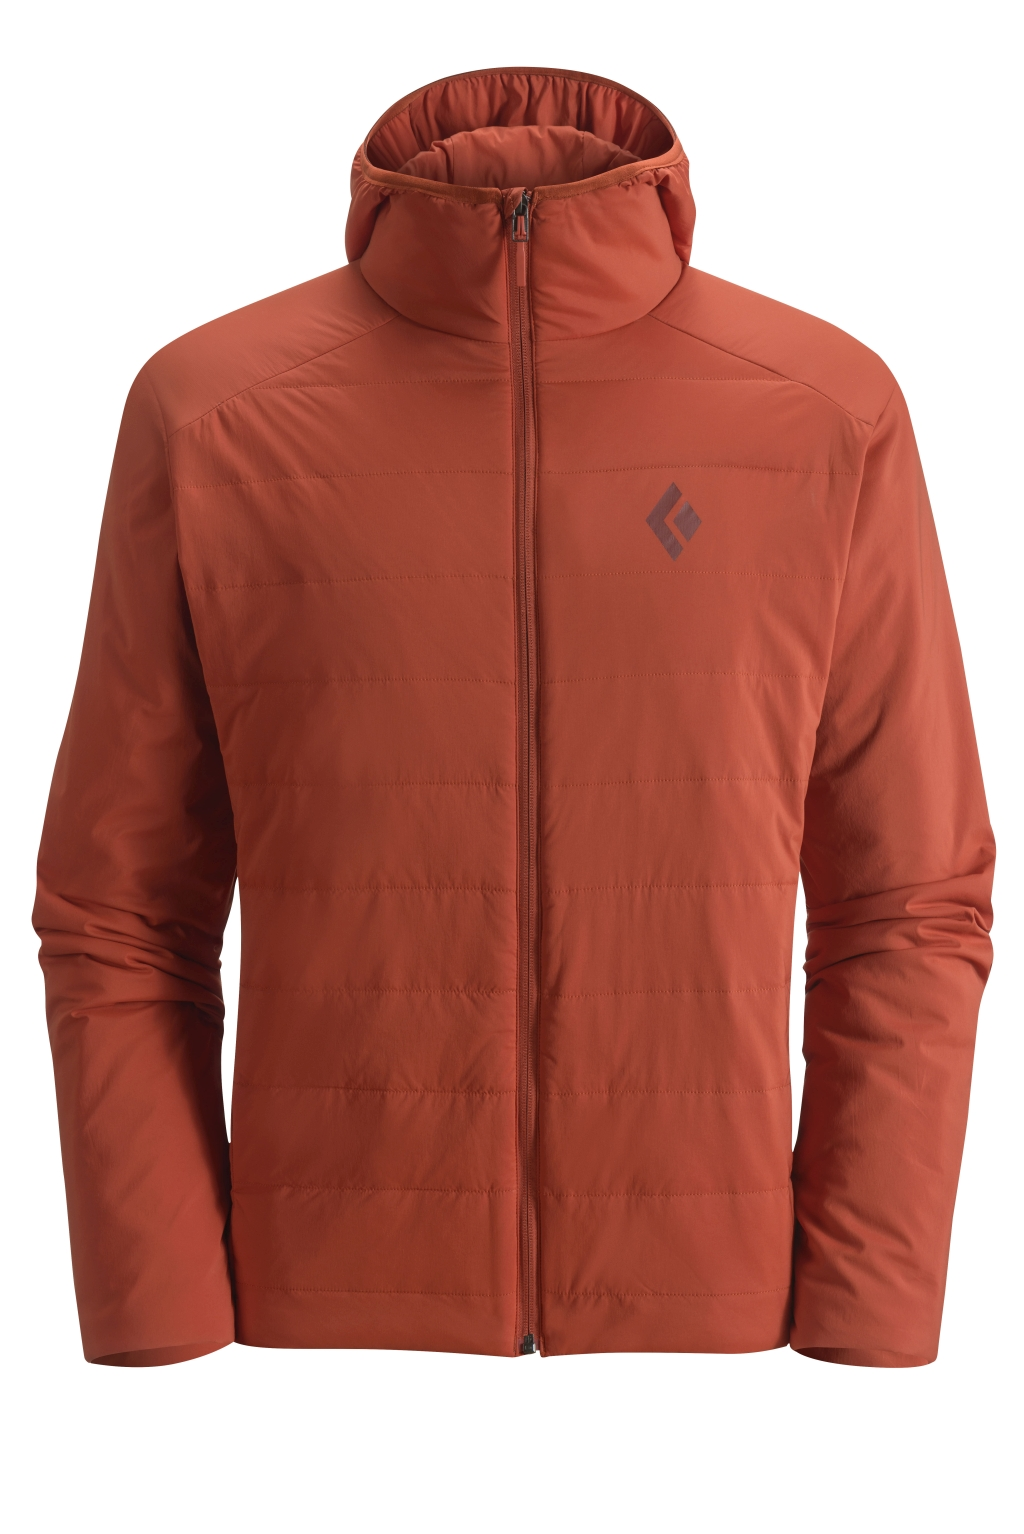 Black Diamond First Light Hoody Rust-30